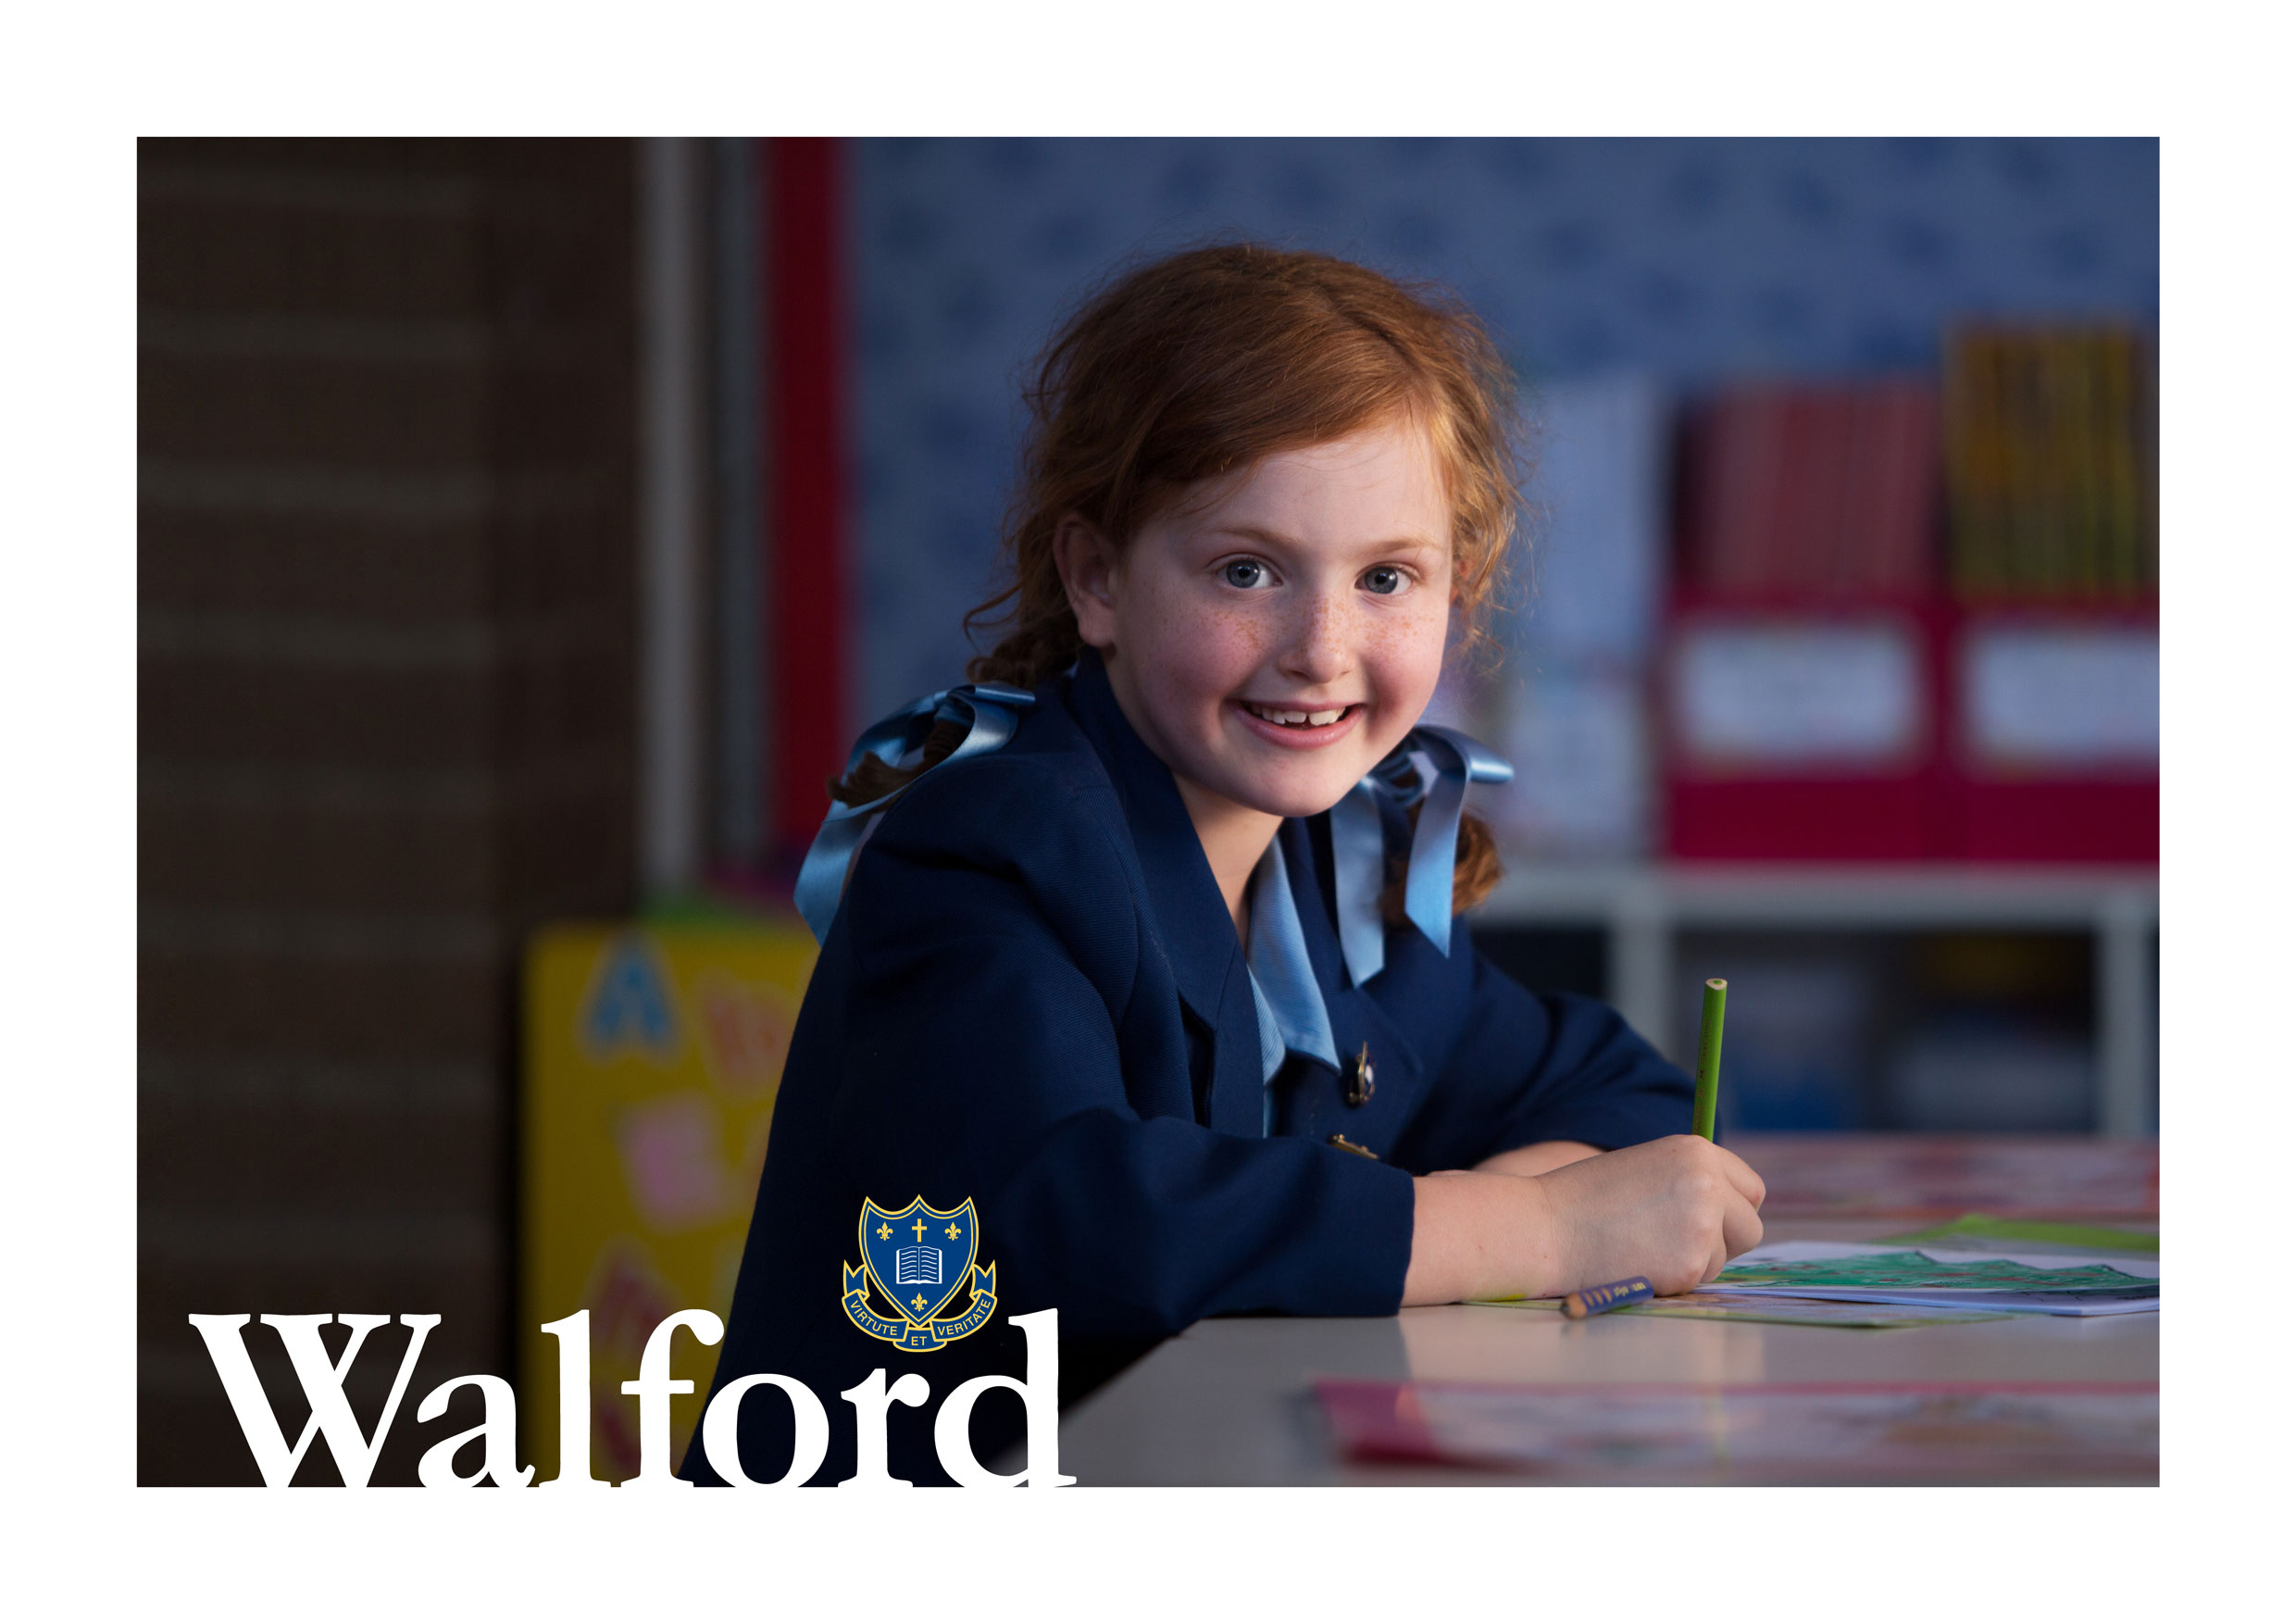 WALFORD-BRANDING-IMAGES_23